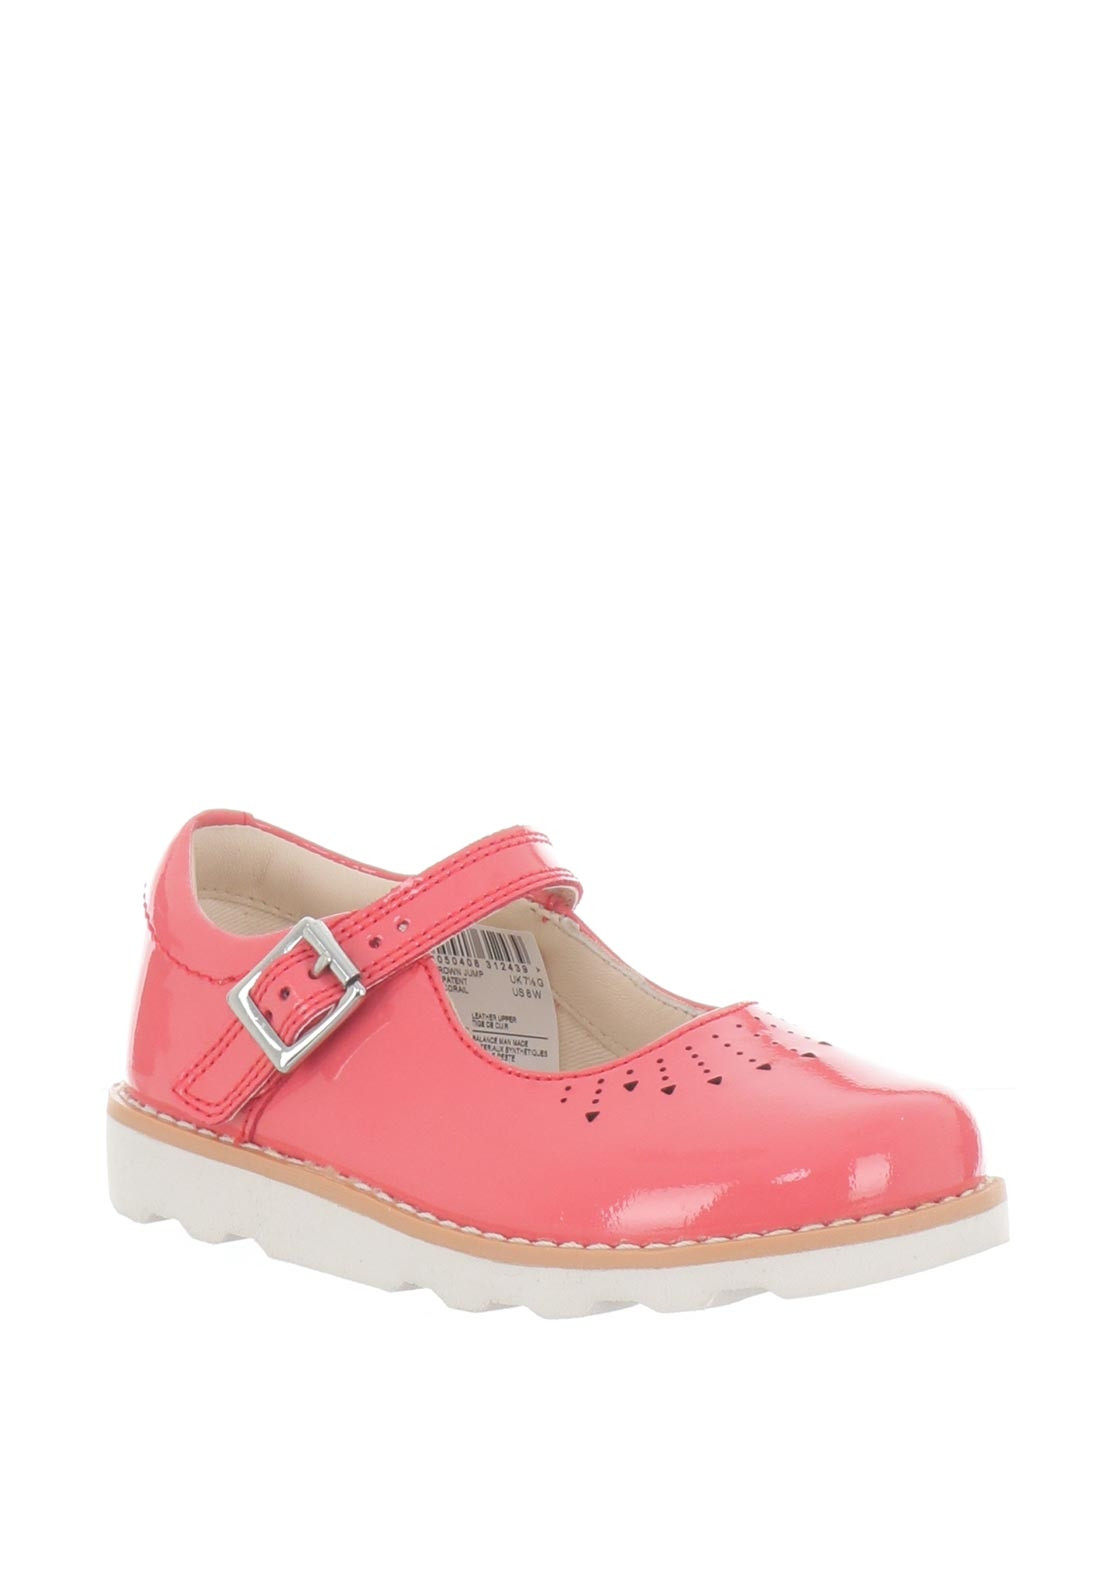 f6c4857bd55723 Clarks Girls Crown Jump Patent Leather Shoes, Coral | McElhinneys